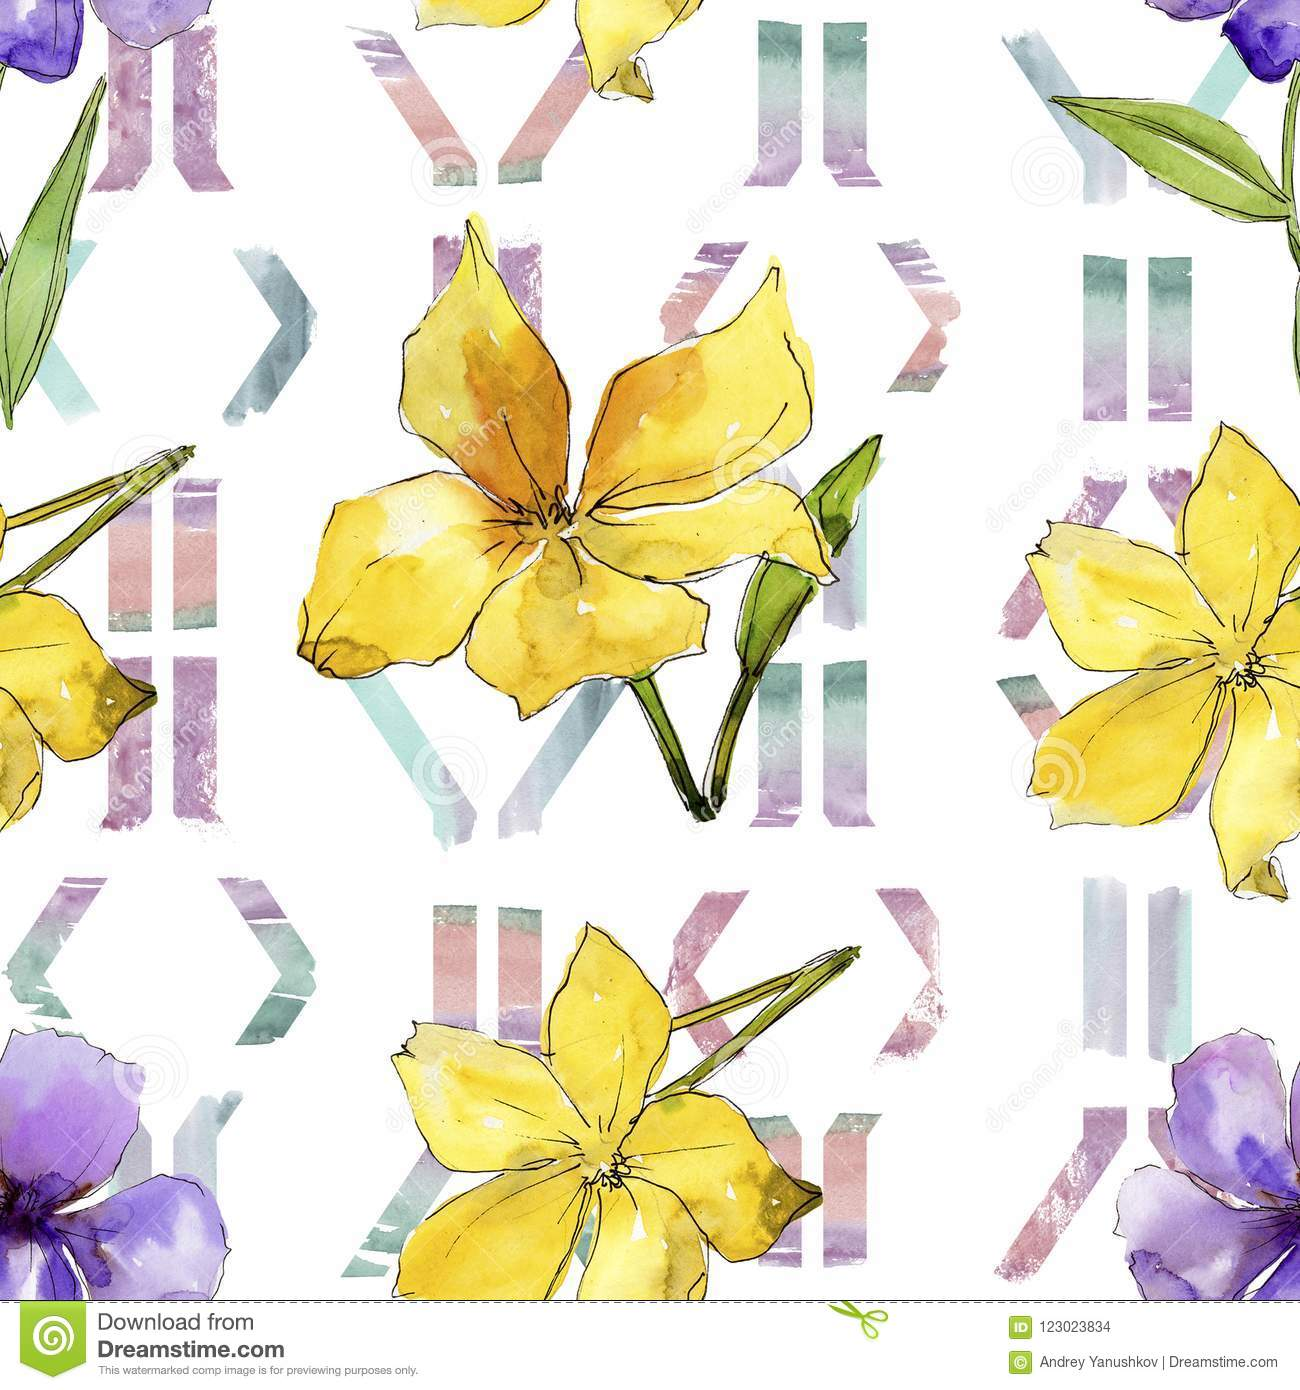 Watercolor blue and yellow flax flowers floral botanical flower watercolor blue and yellow flax flowers floral botanical flower seamless background pattern mightylinksfo